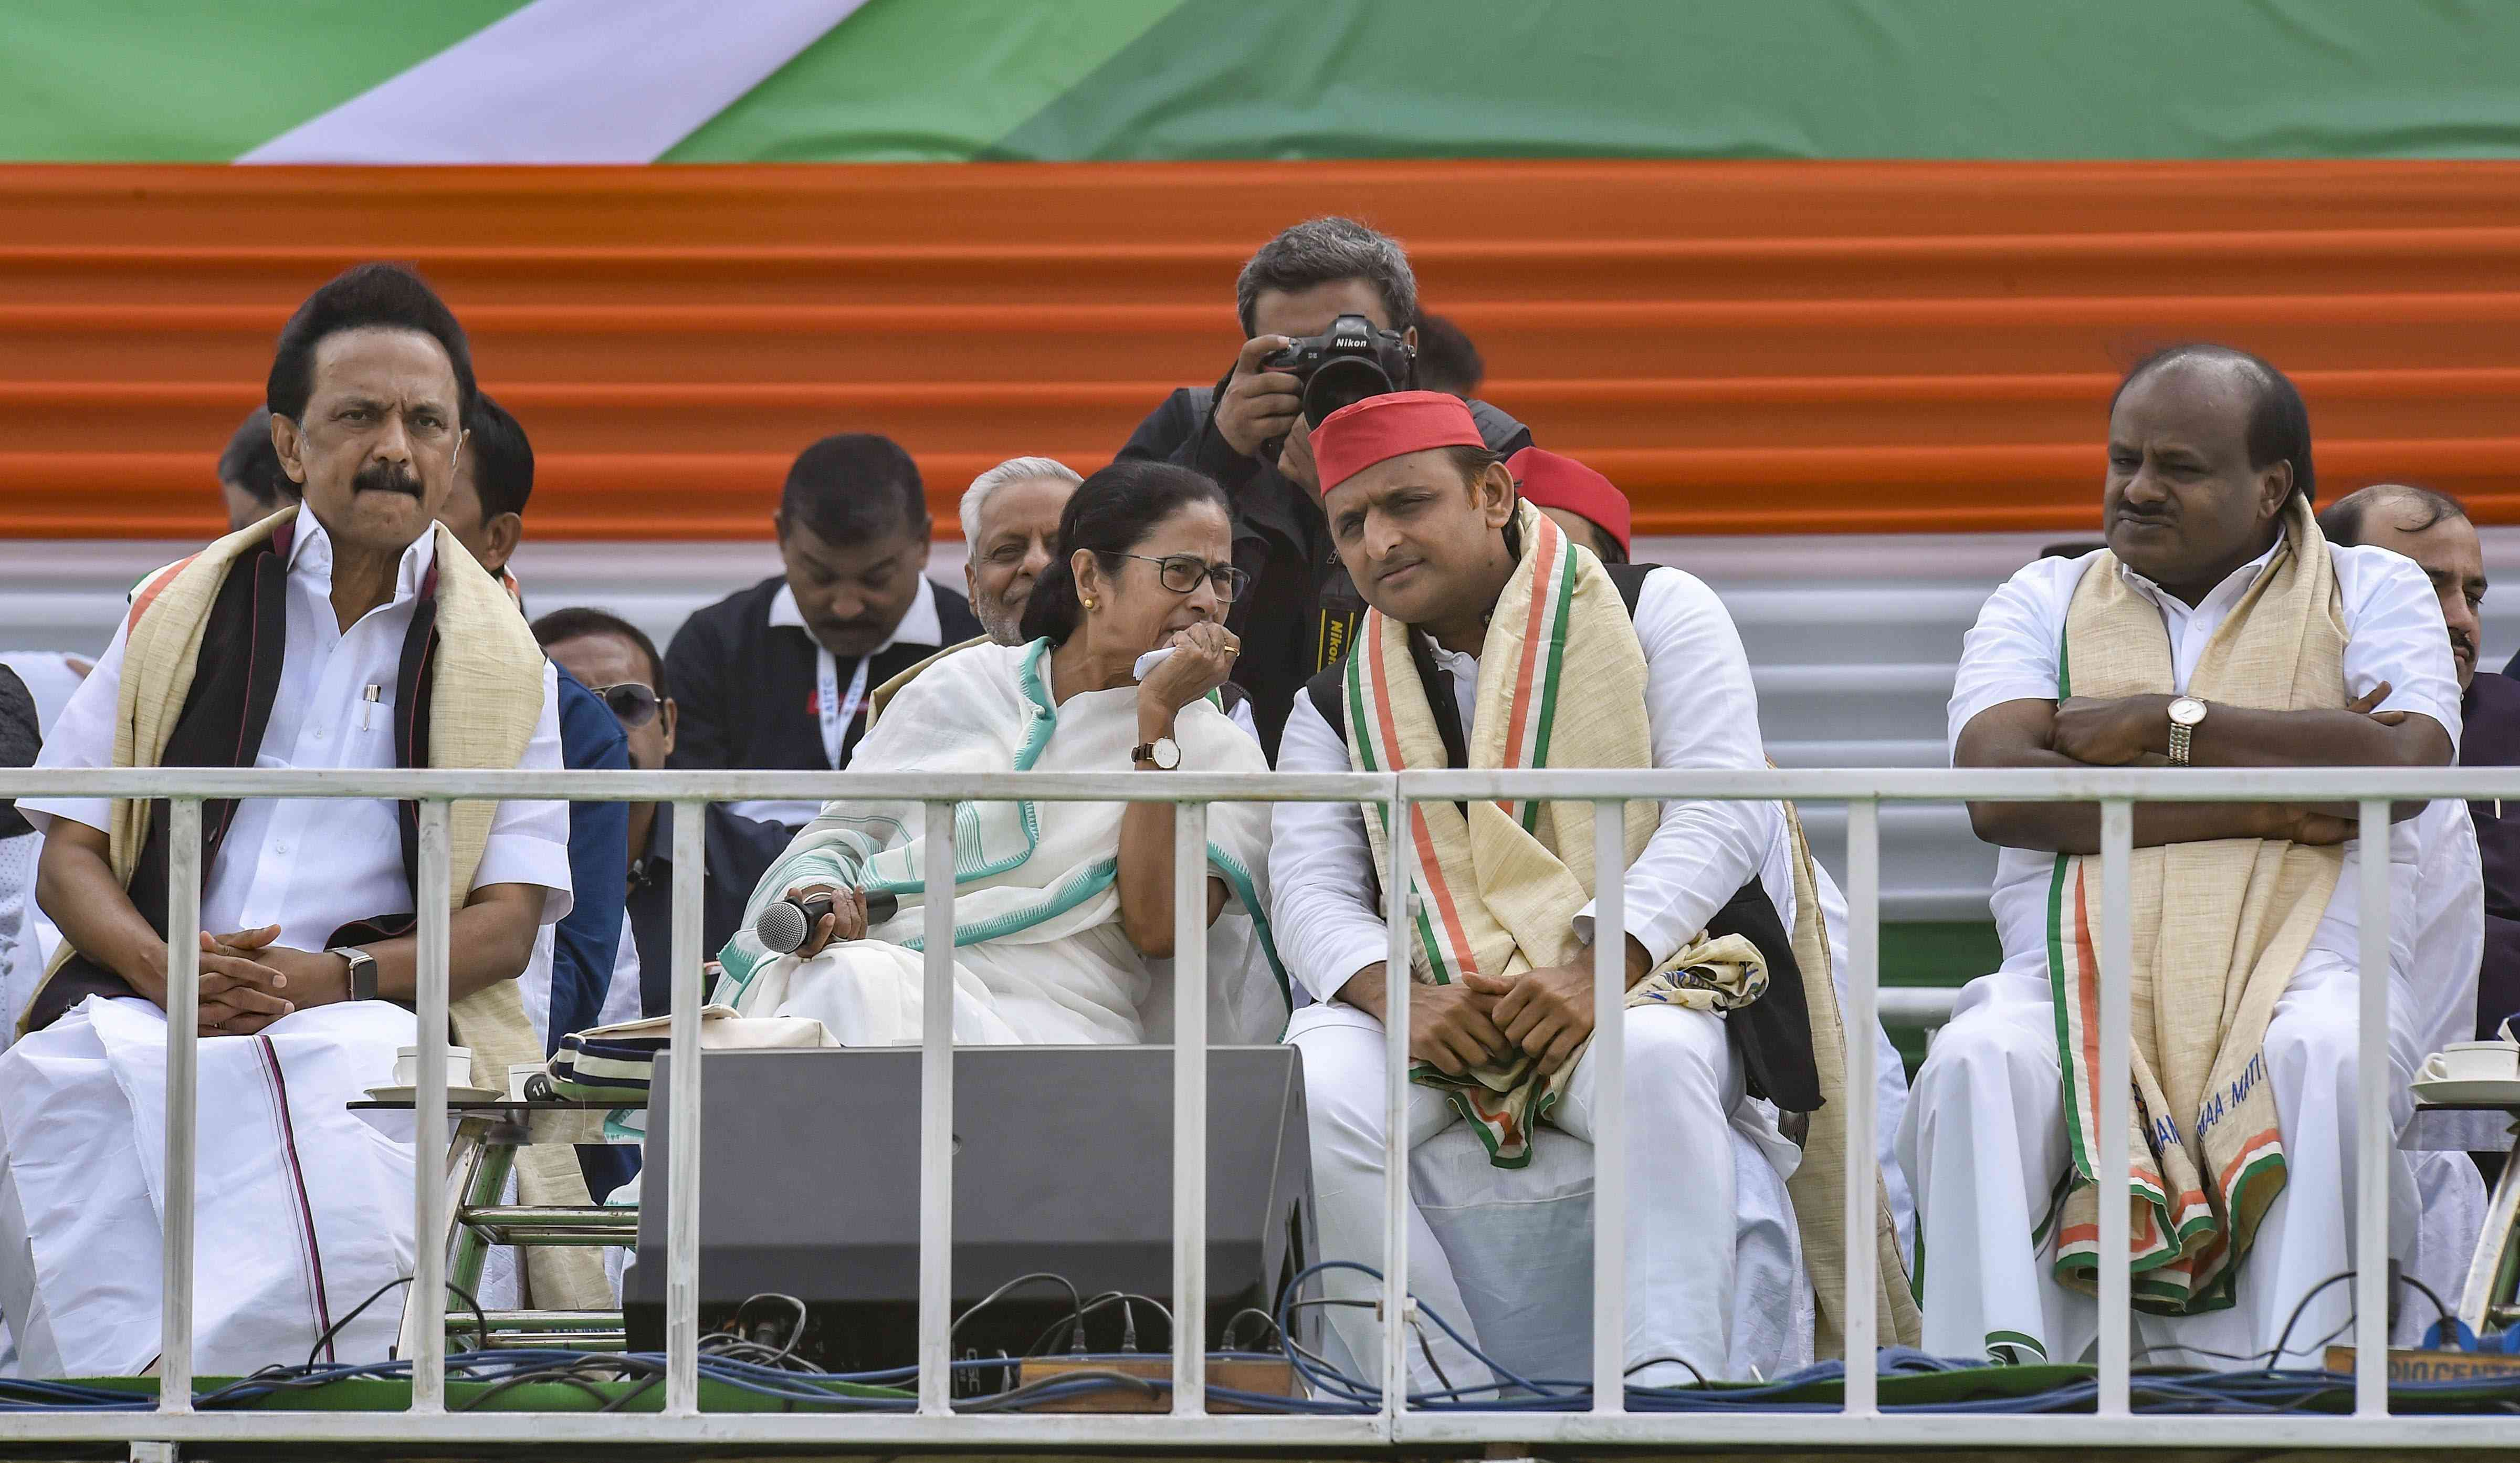 "West Bengal Chief Minister Mamata Banerjee, Samajwadi Party President Akhilesh Yadav, Karnataka Chief Minister HD Kumaraswamy and Dravida Munnetra Kazahagam President MK Stalin seen at the ""United India"" rally in Kolkata on January 19, 2019. Credit: PTI"